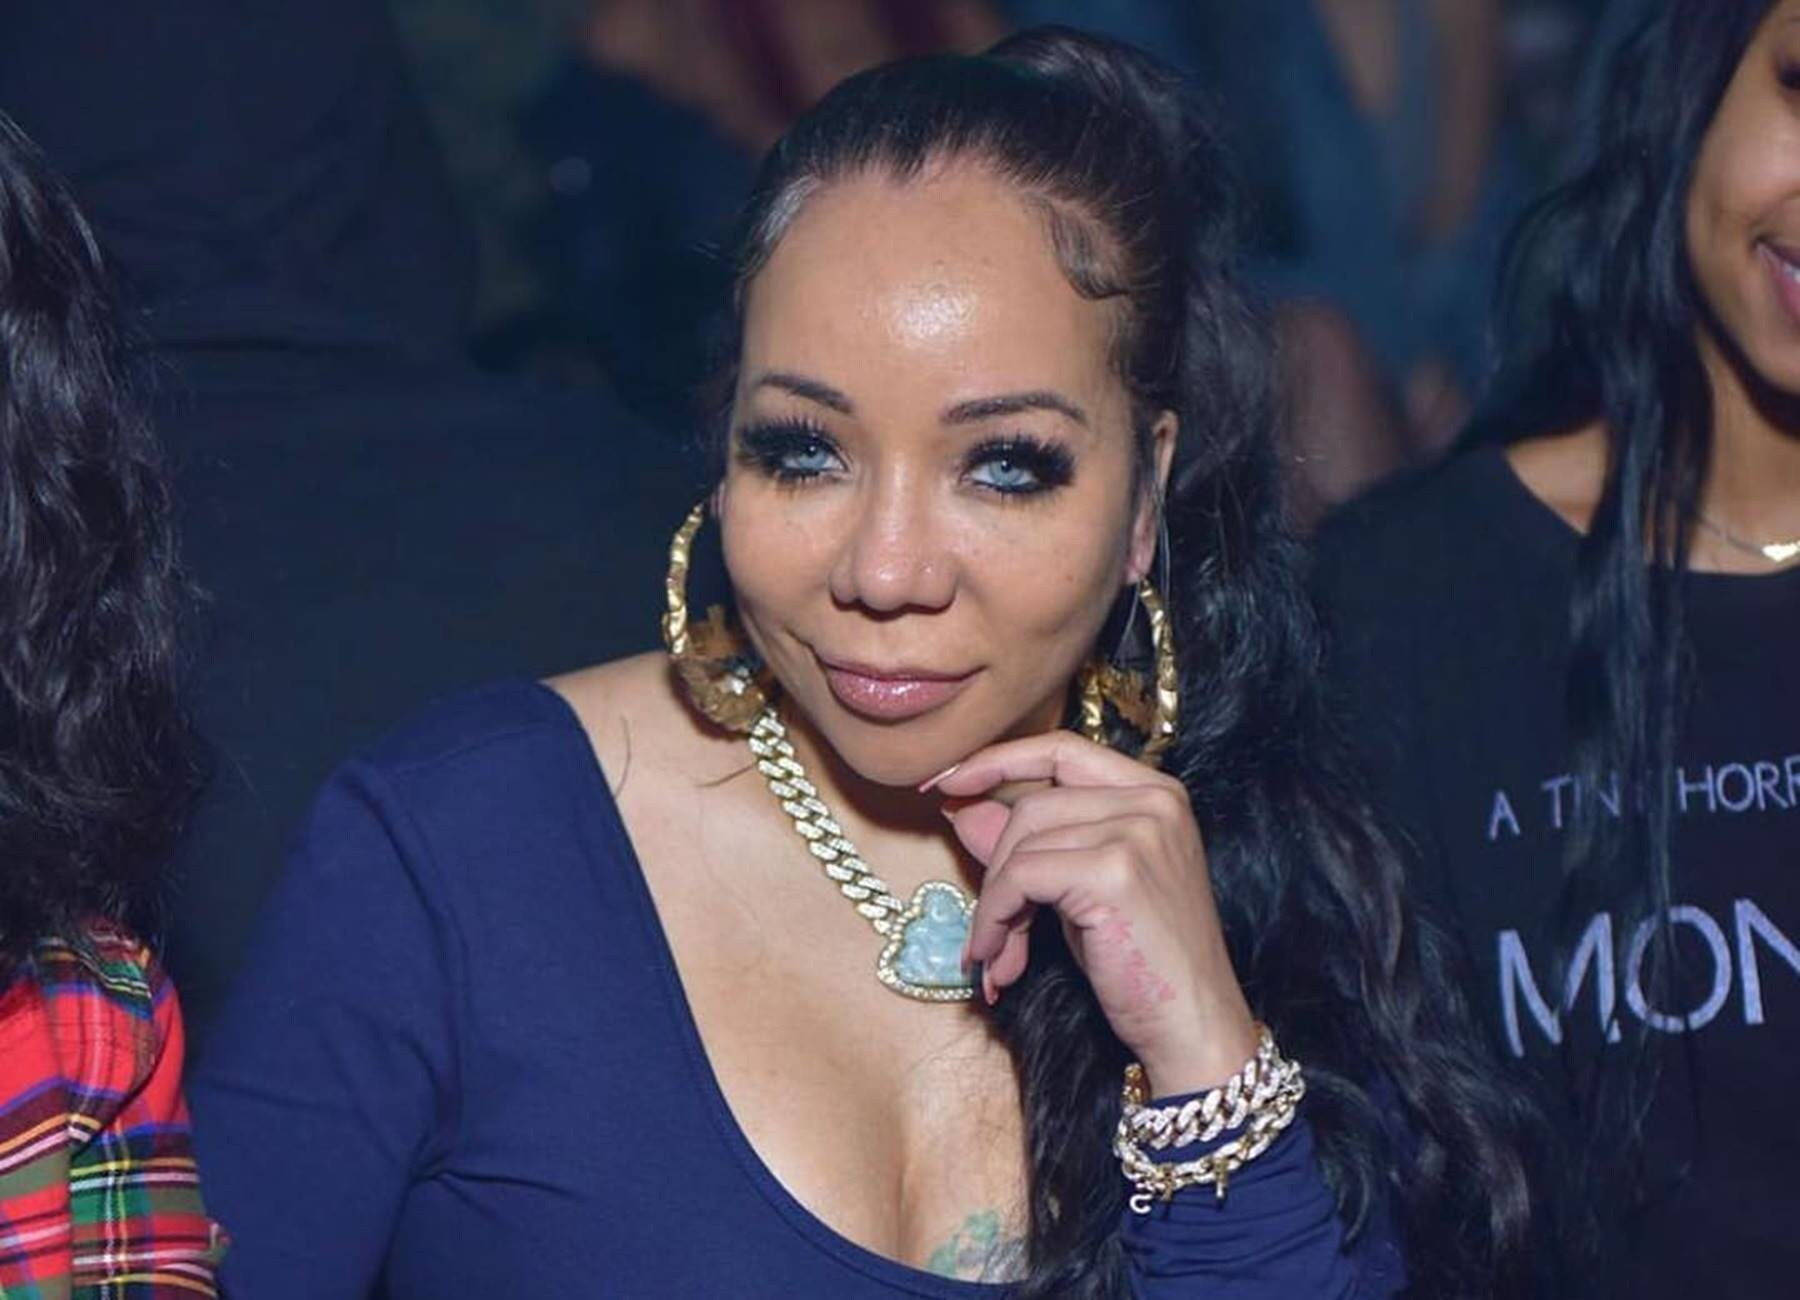 Tiny Harris' Latest Pics From The Filming Of Her New Video Have Fans Saying She's Aging Backwards